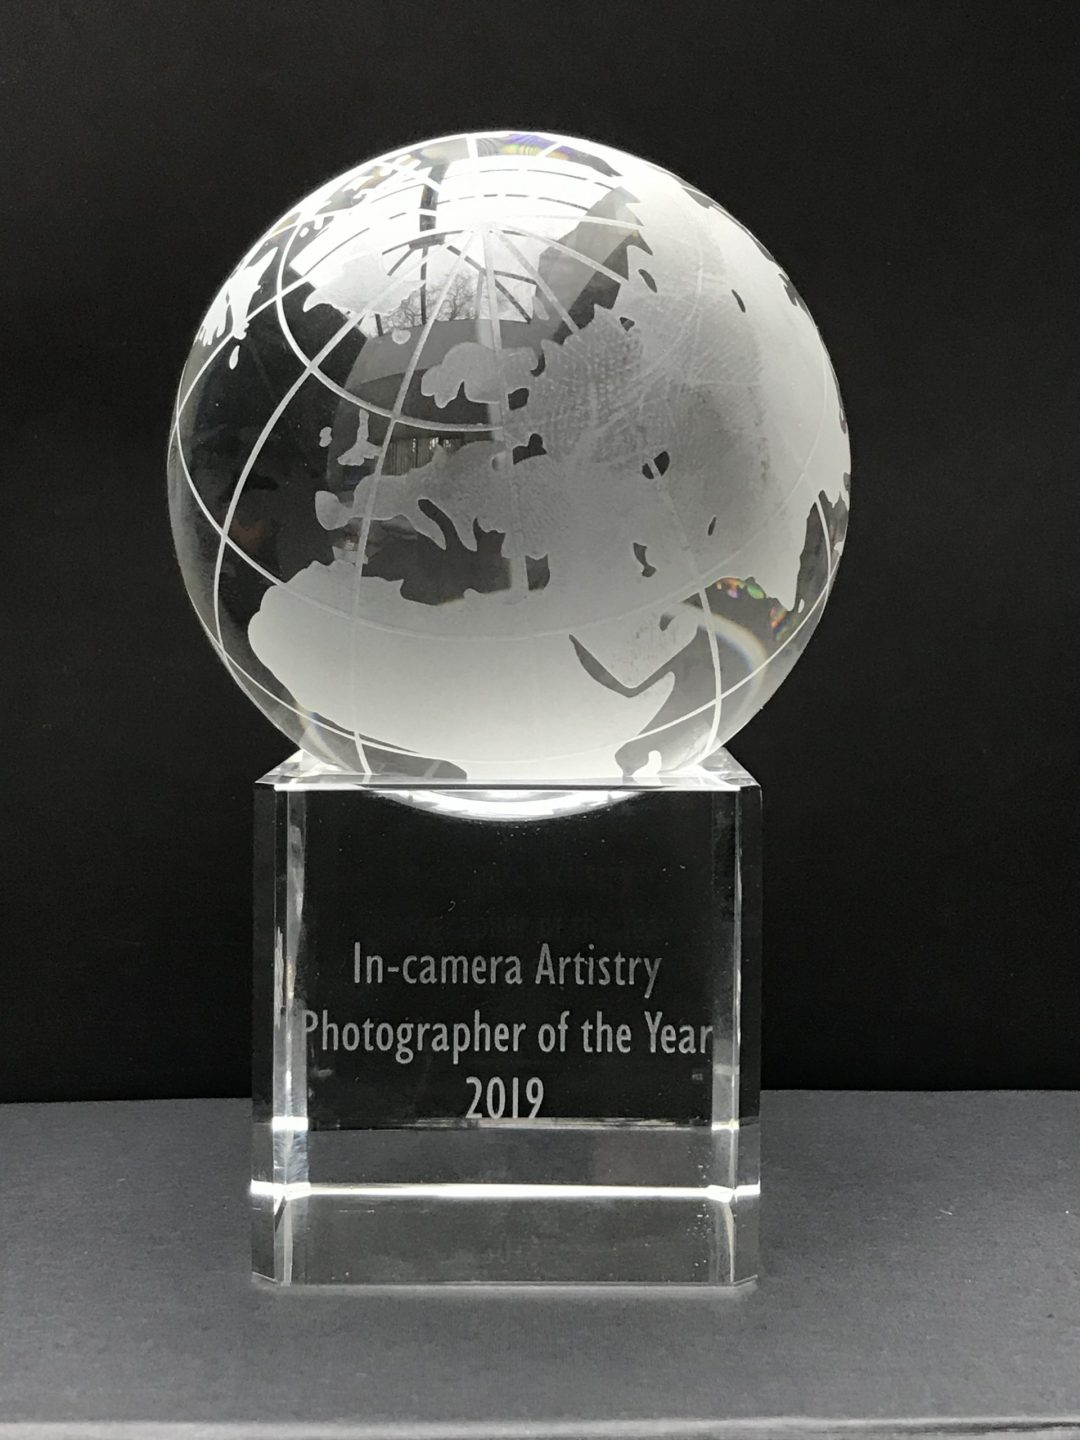 In Camera Artistry award from the SWPP rotating engraved globe on glass stand